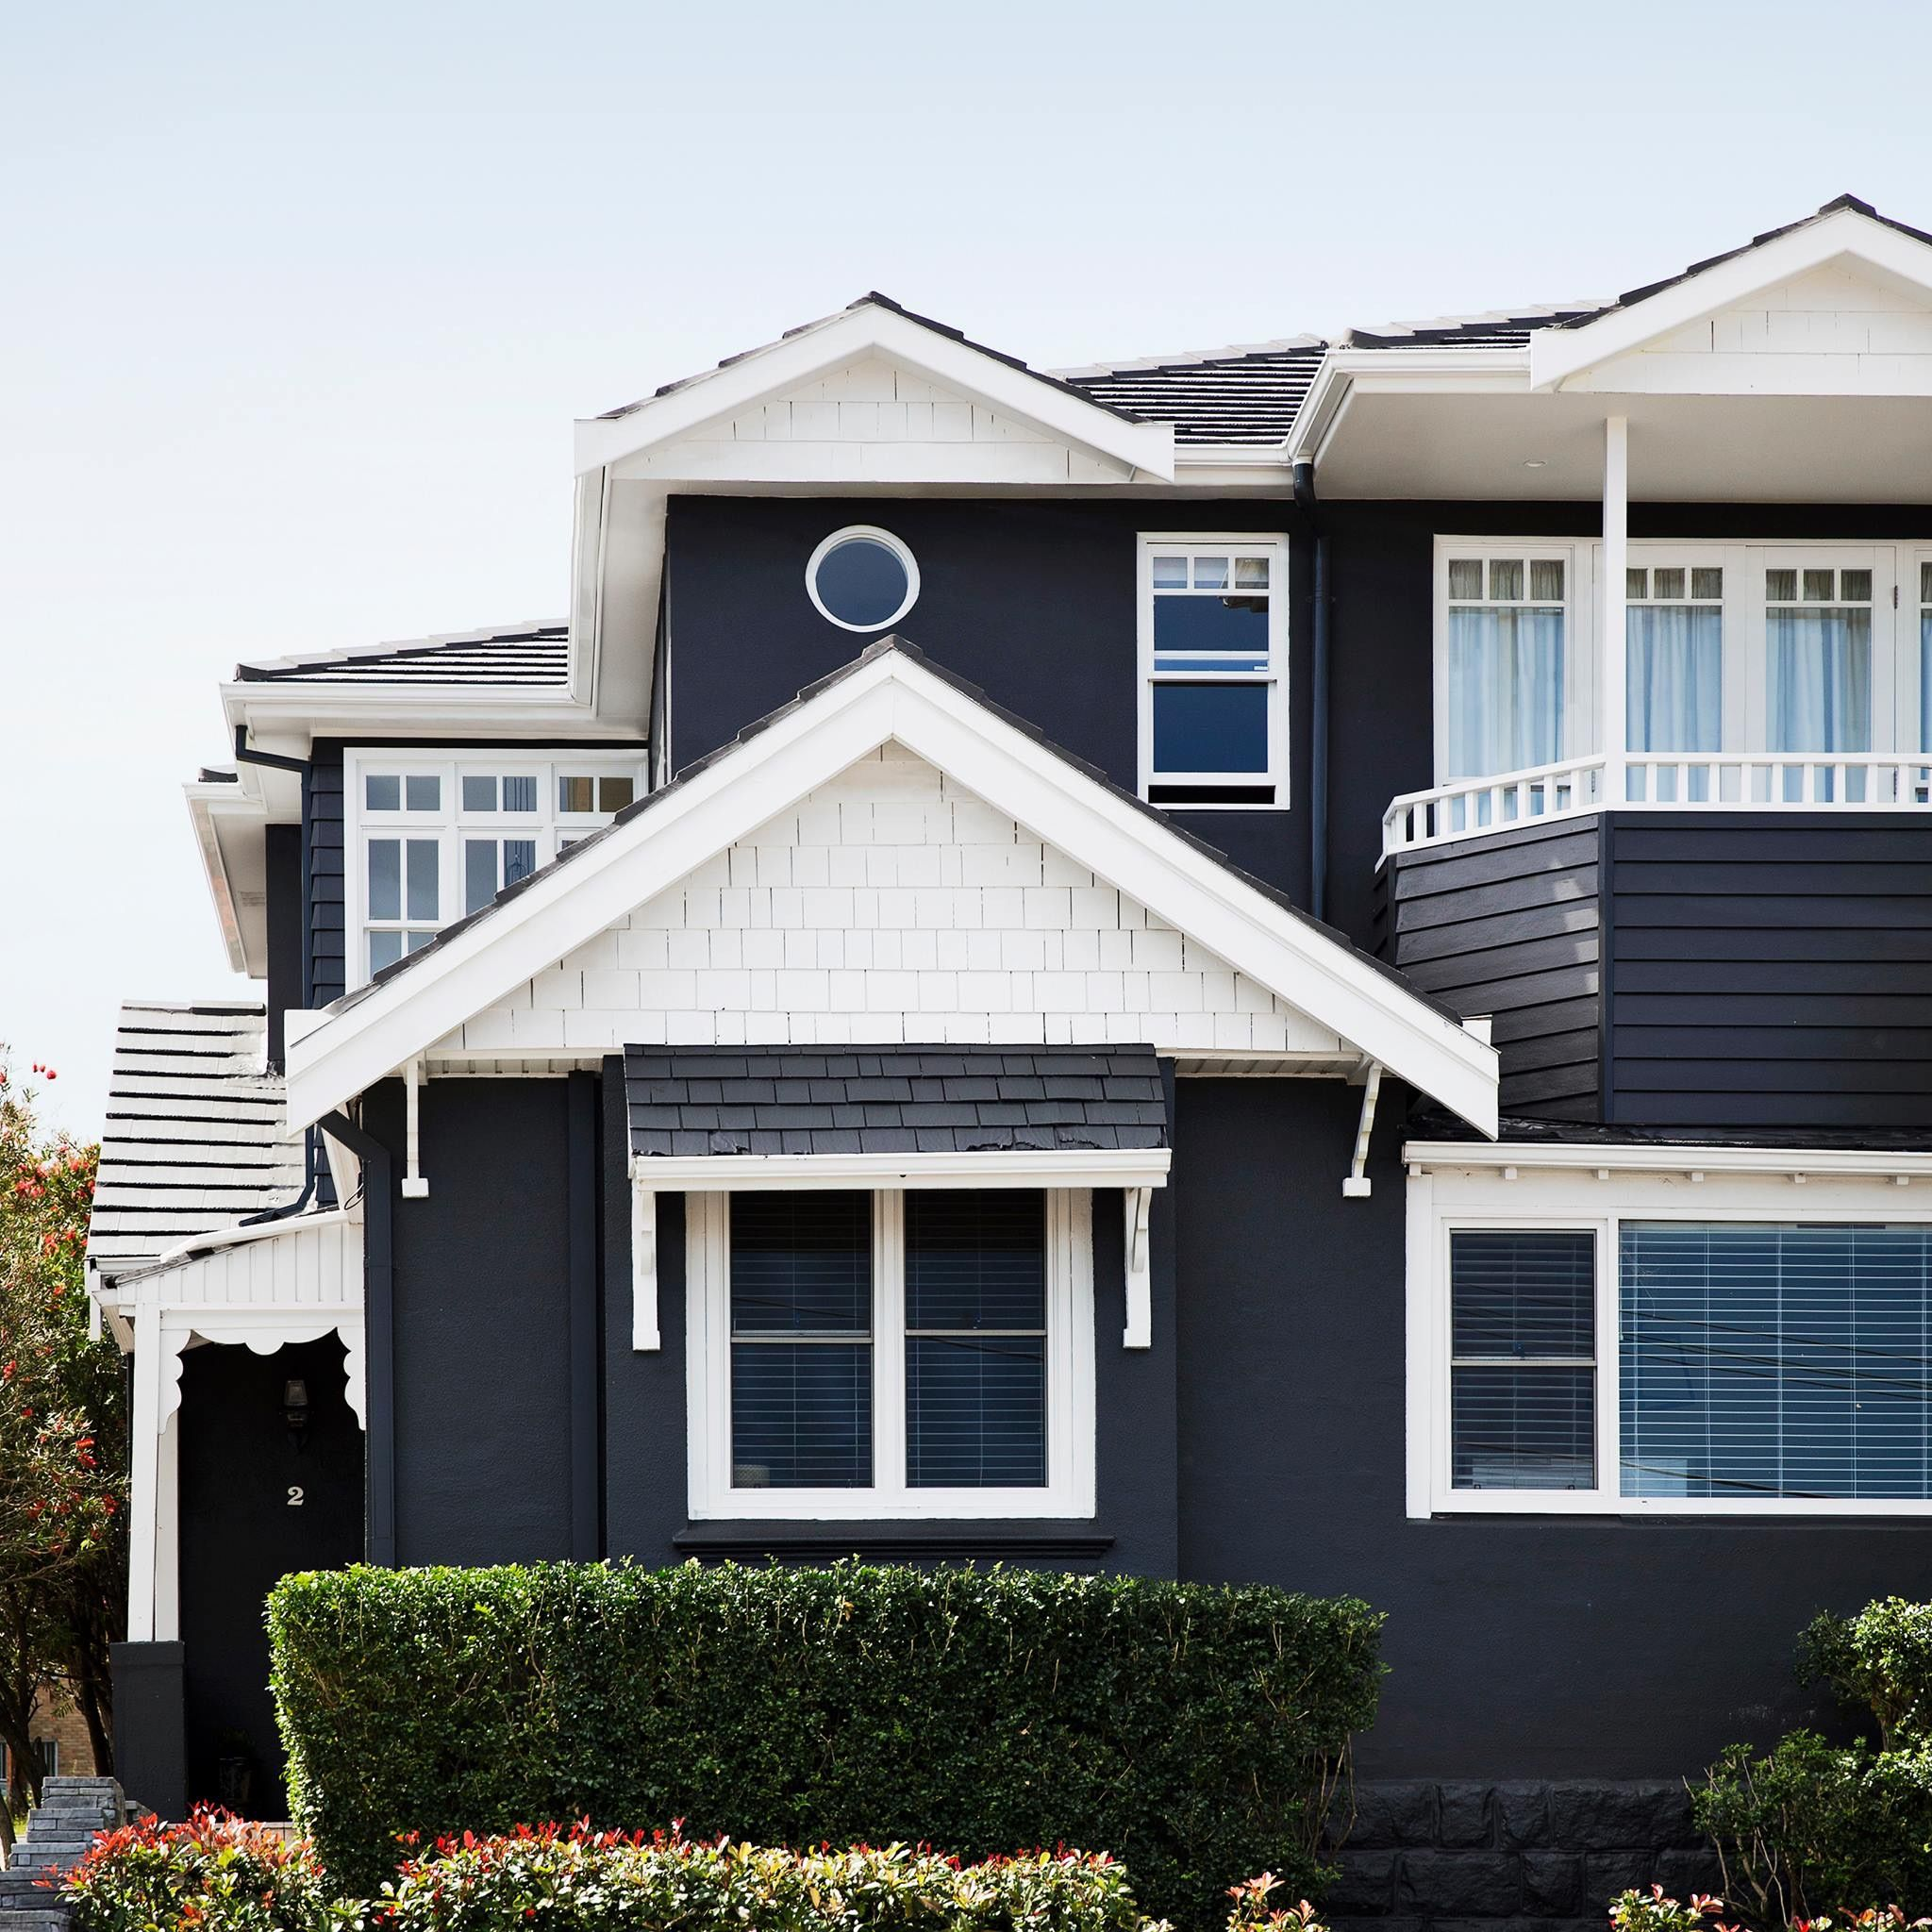 Bungalow Paint Schemes: Dark Grey/charcoal And White Colour Scheme For House